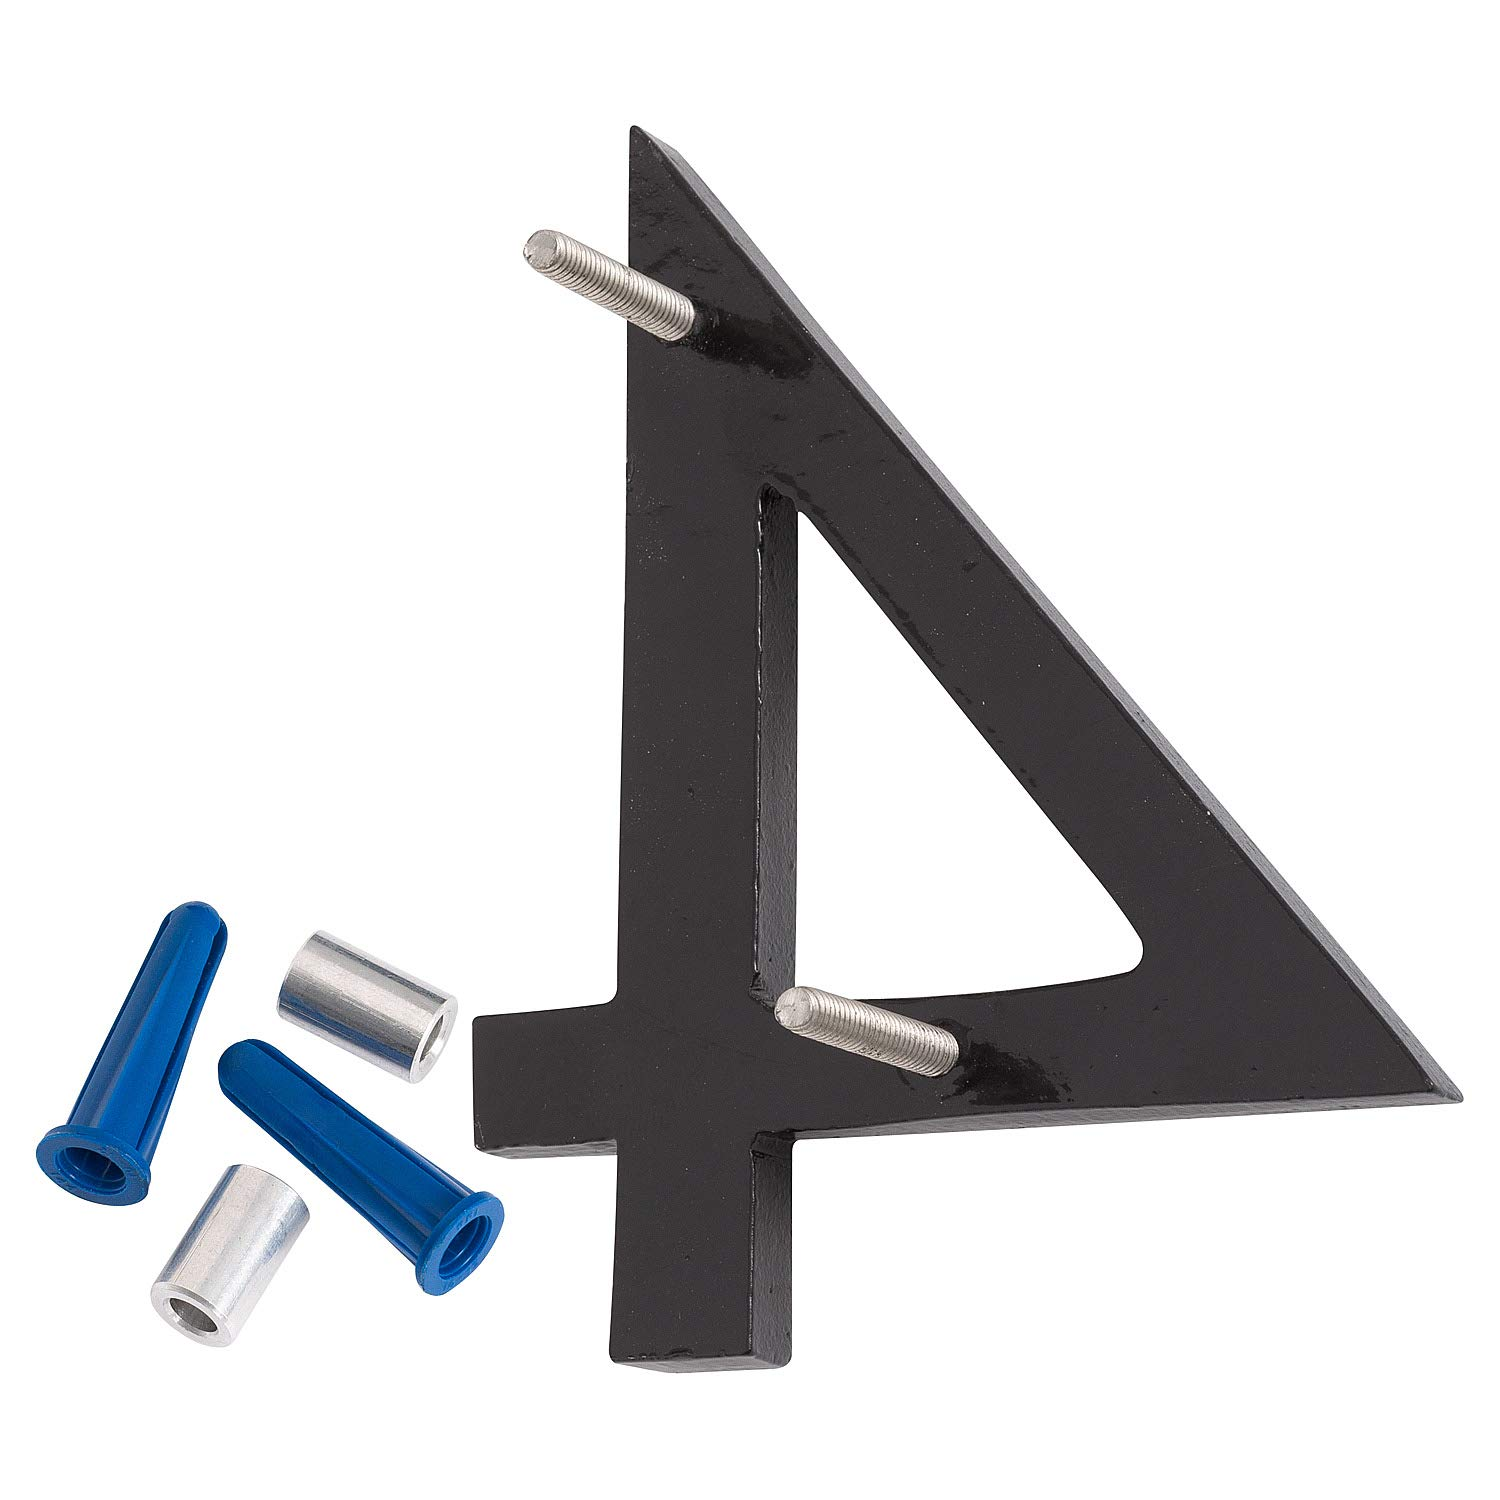 Montague Metal Products MHN-12-4-F-BK1 Floating House Number 12 x 10.06 x 0.375 Black